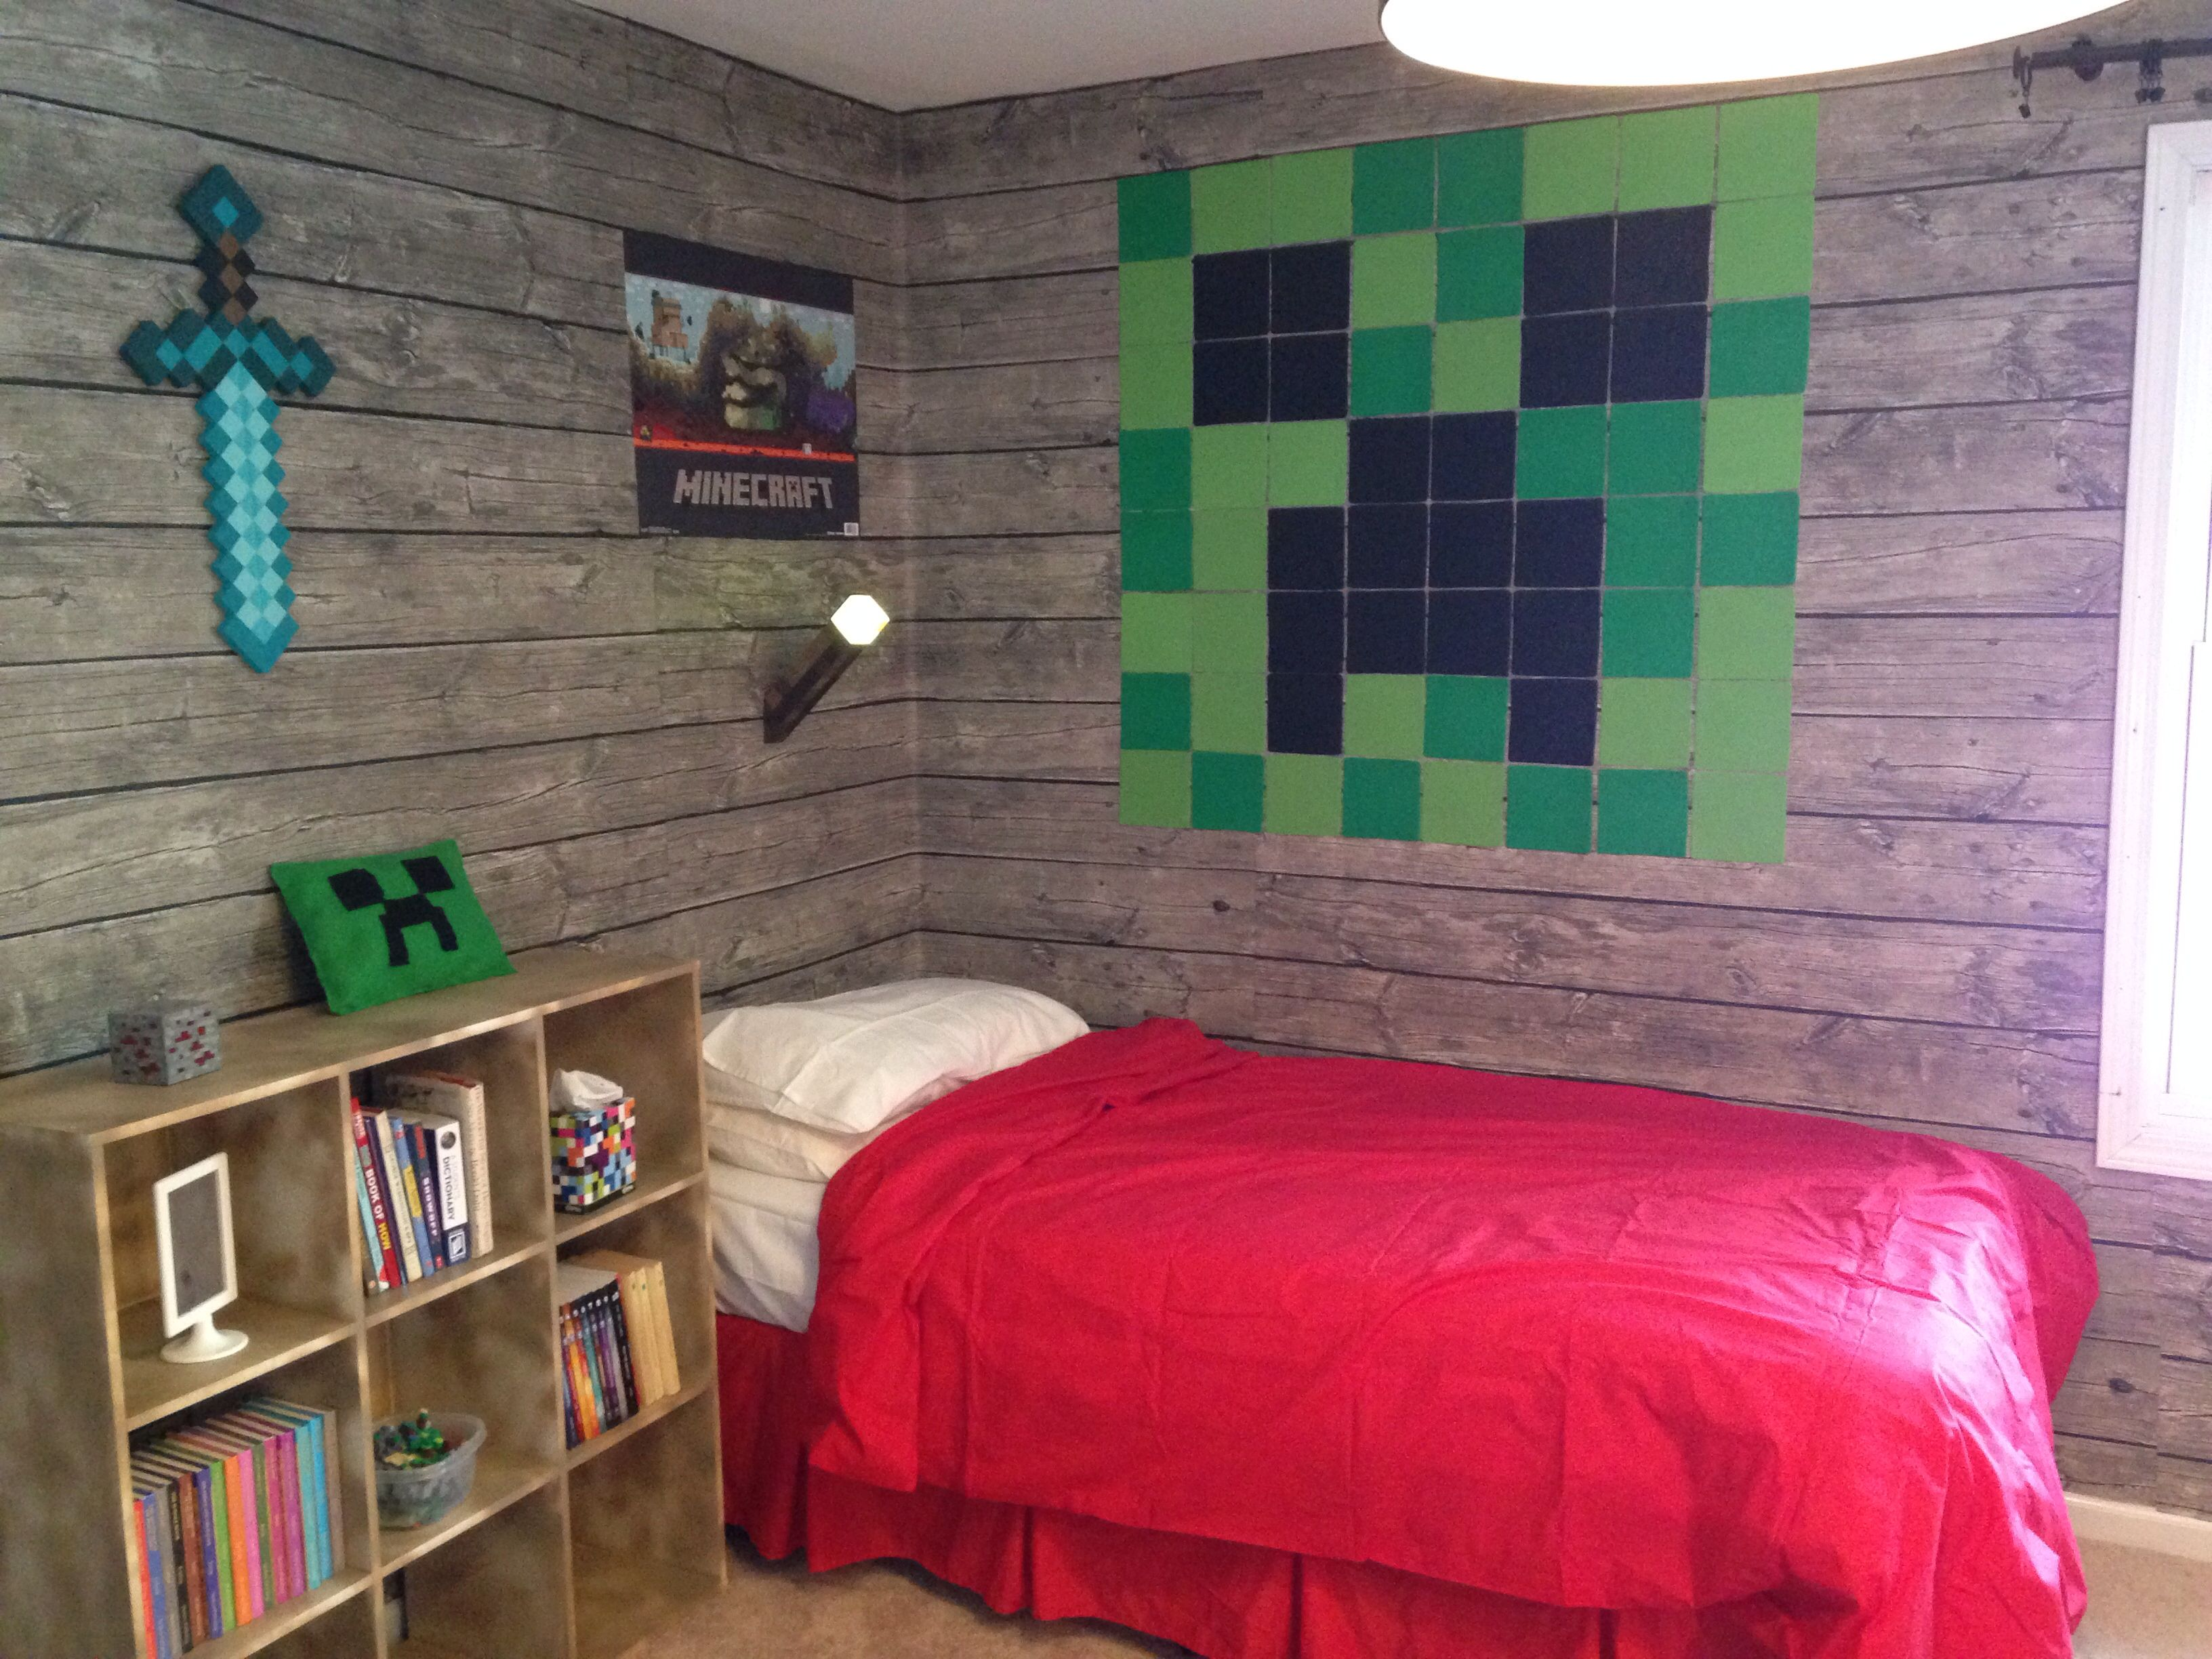 Cool Bedroom Designs Minecraft minecraft bedroom - my son loves it! check out http